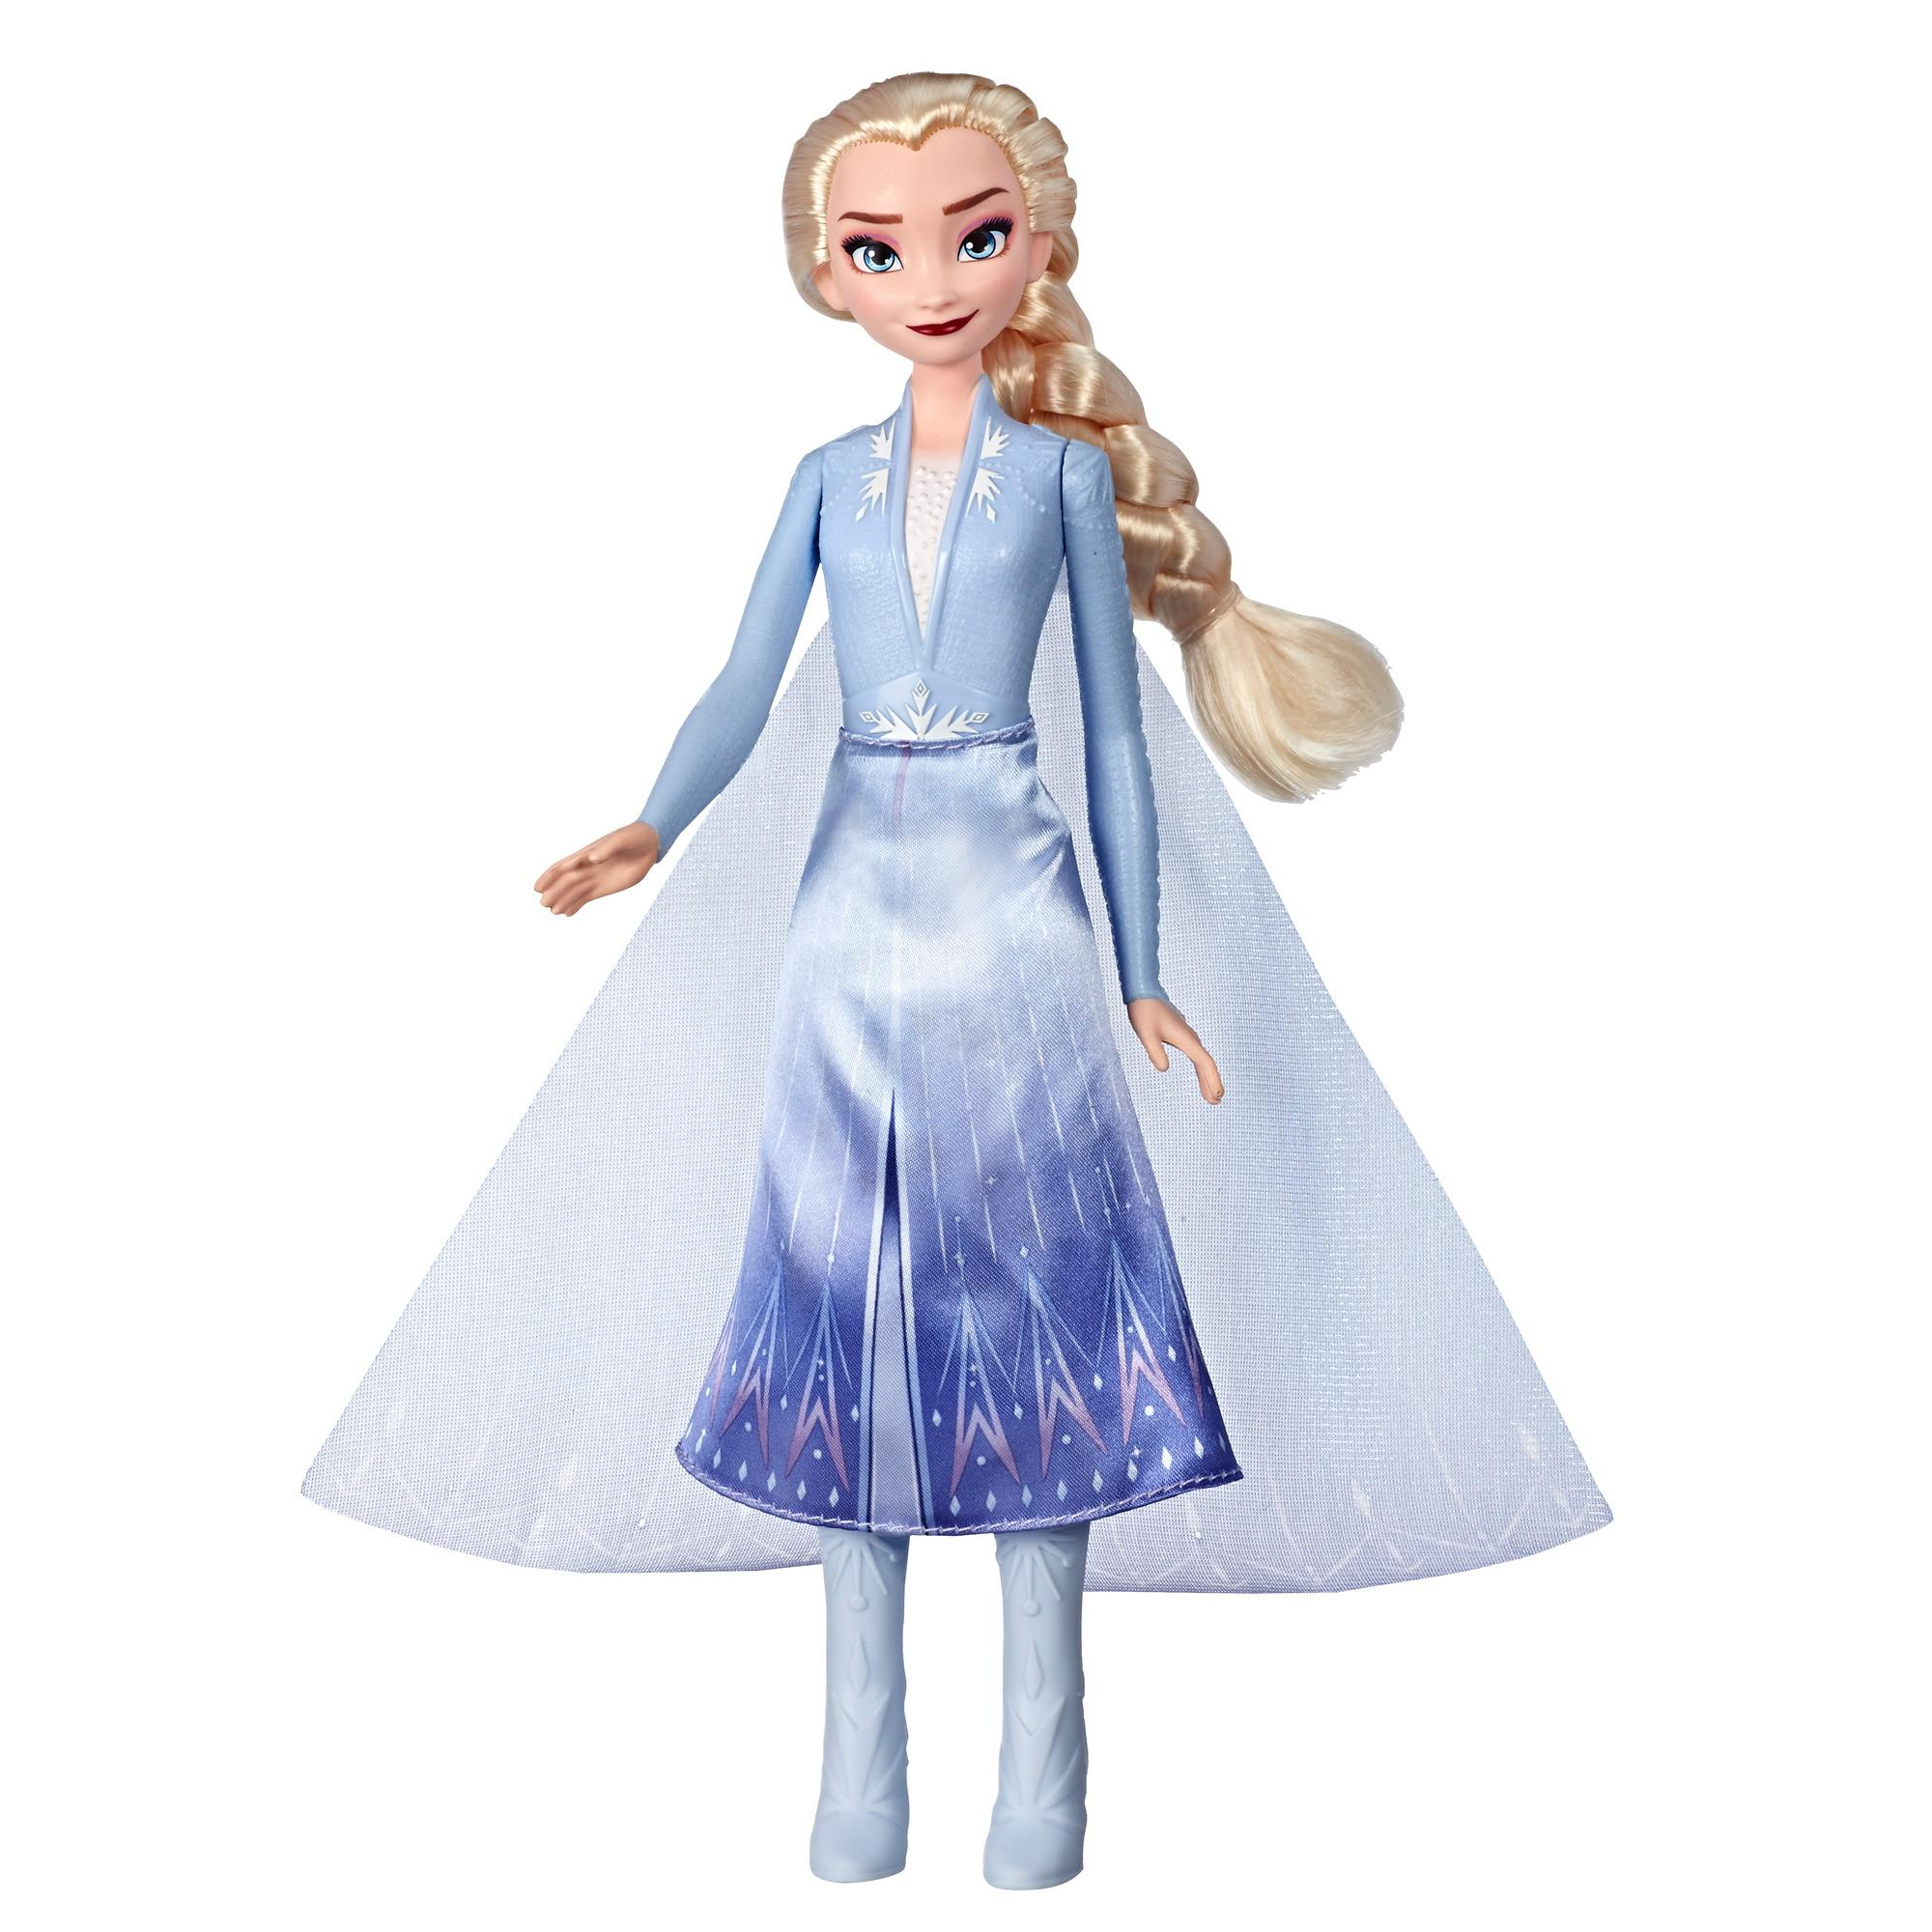 Frozen 2 Papusa Elsa care lumineaza